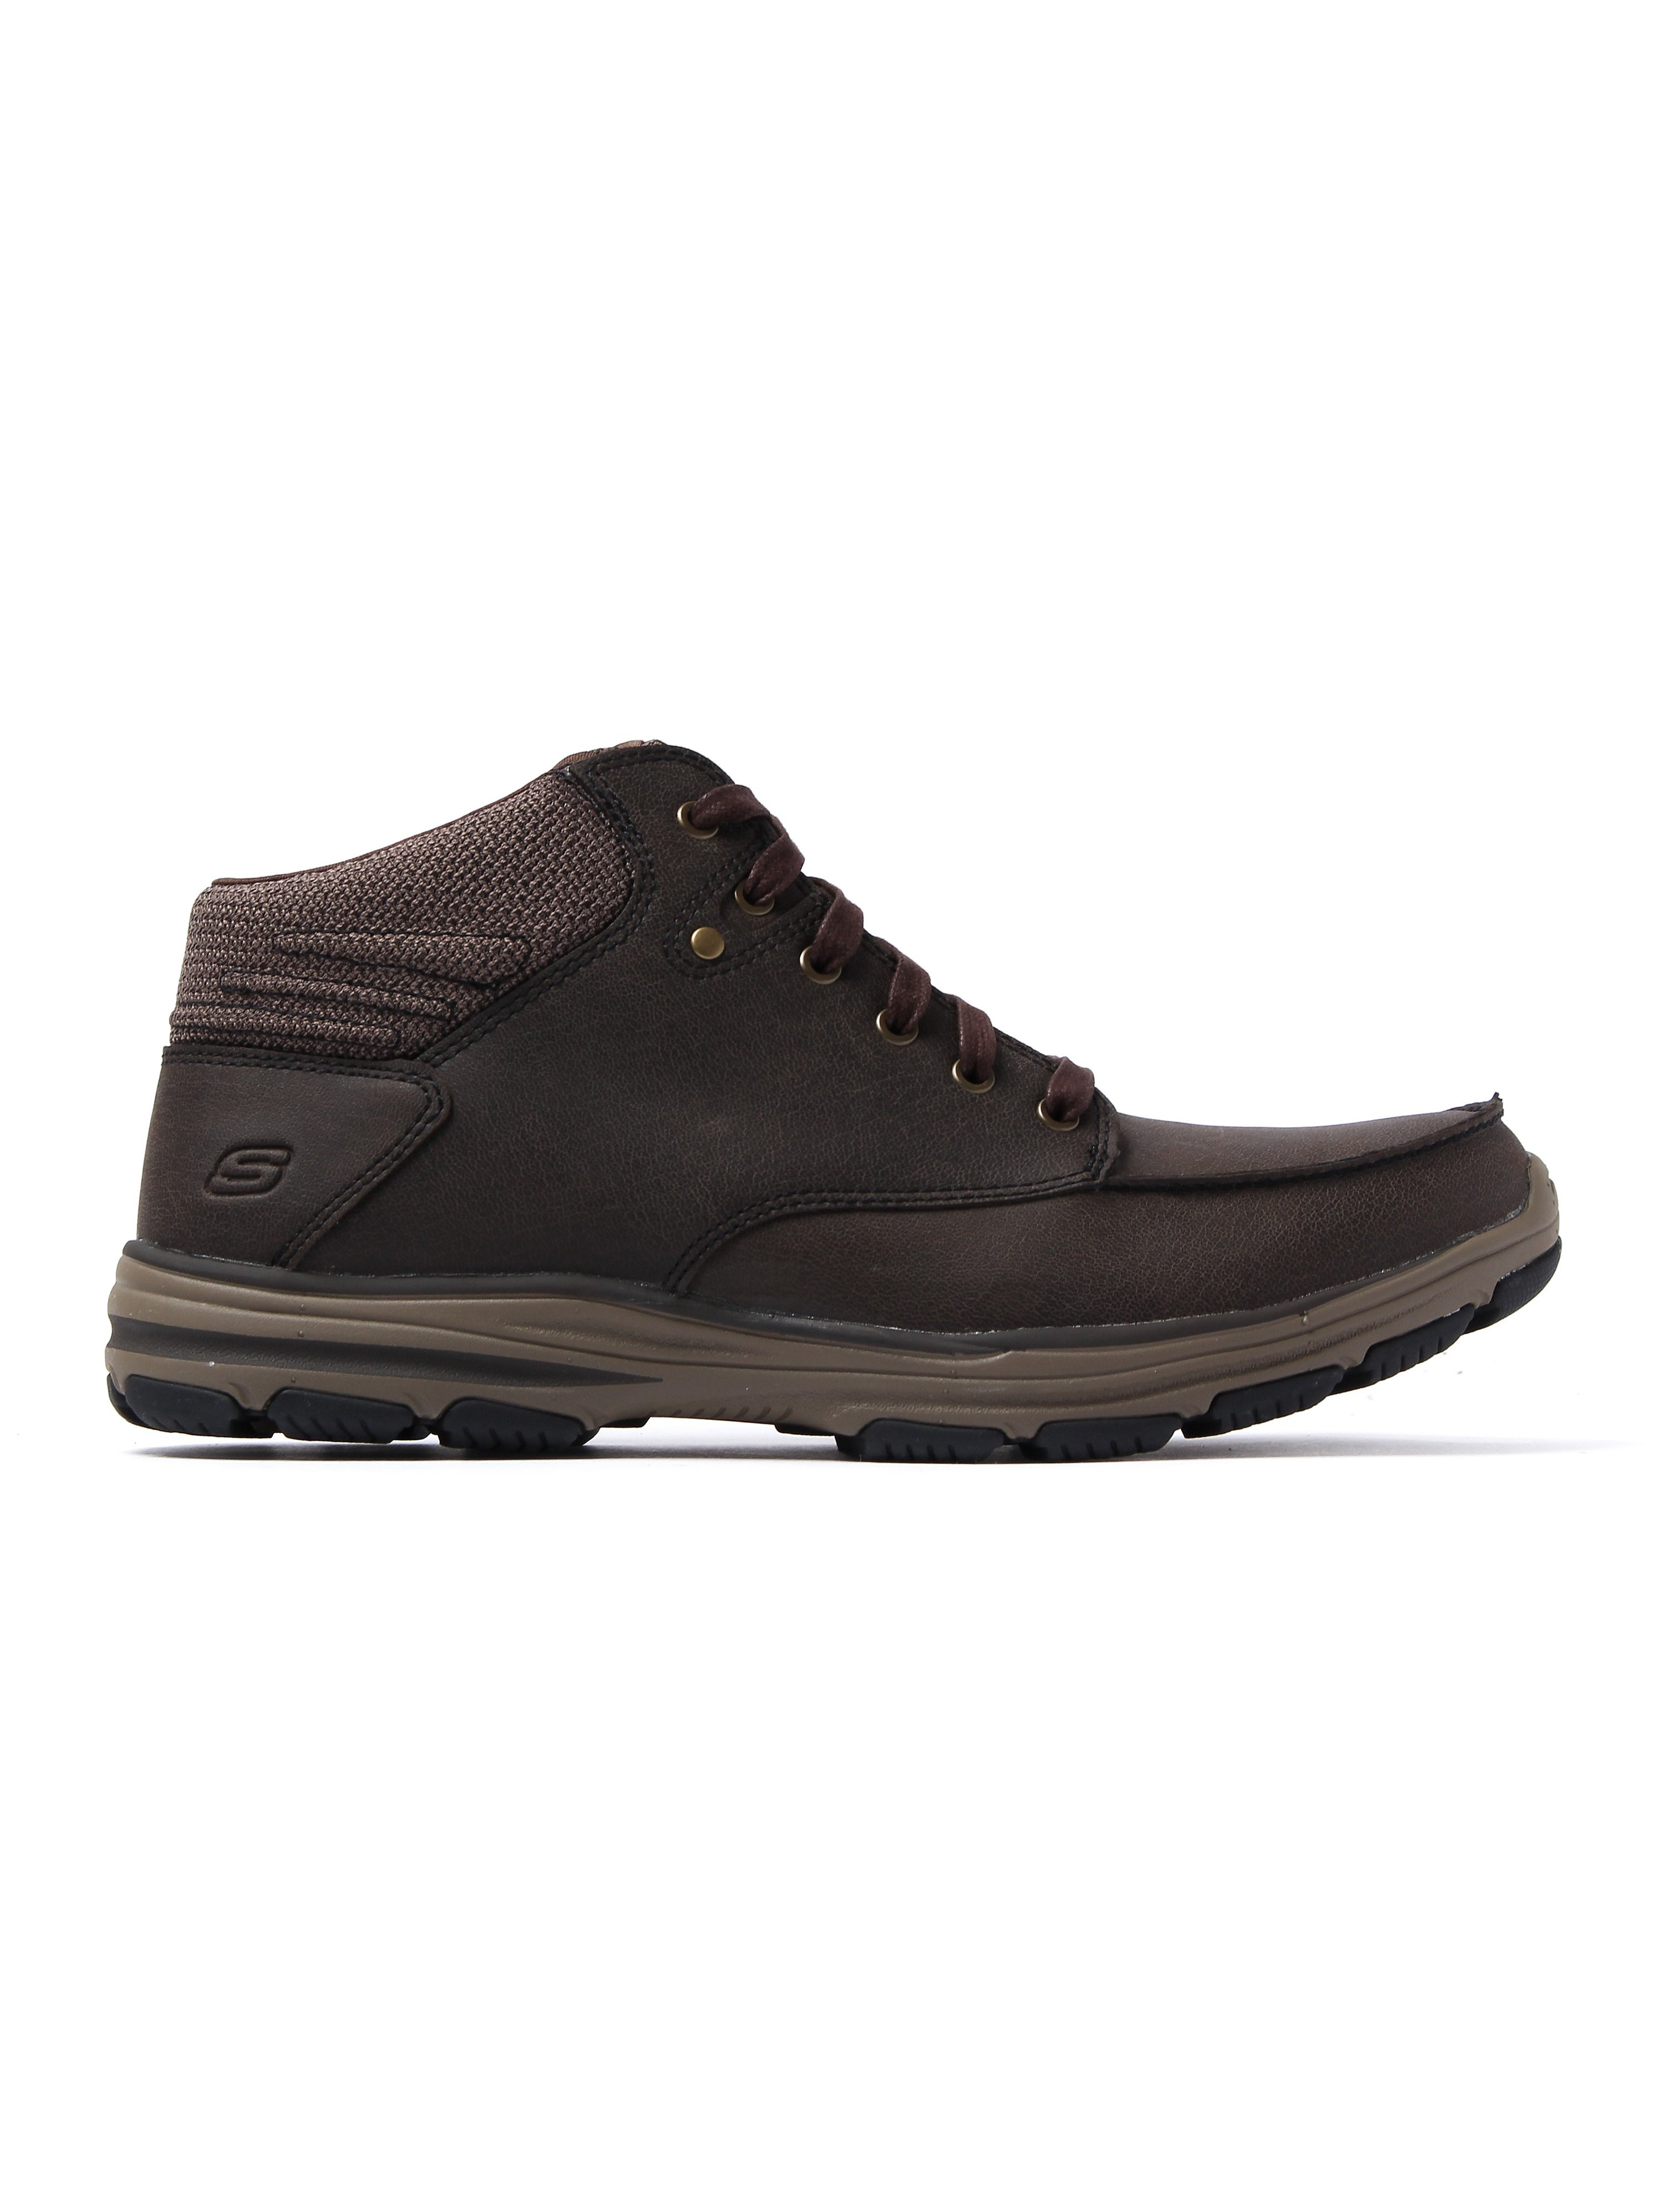 Skechers Men's Garton Meleno Chukka Boots - Chocolate